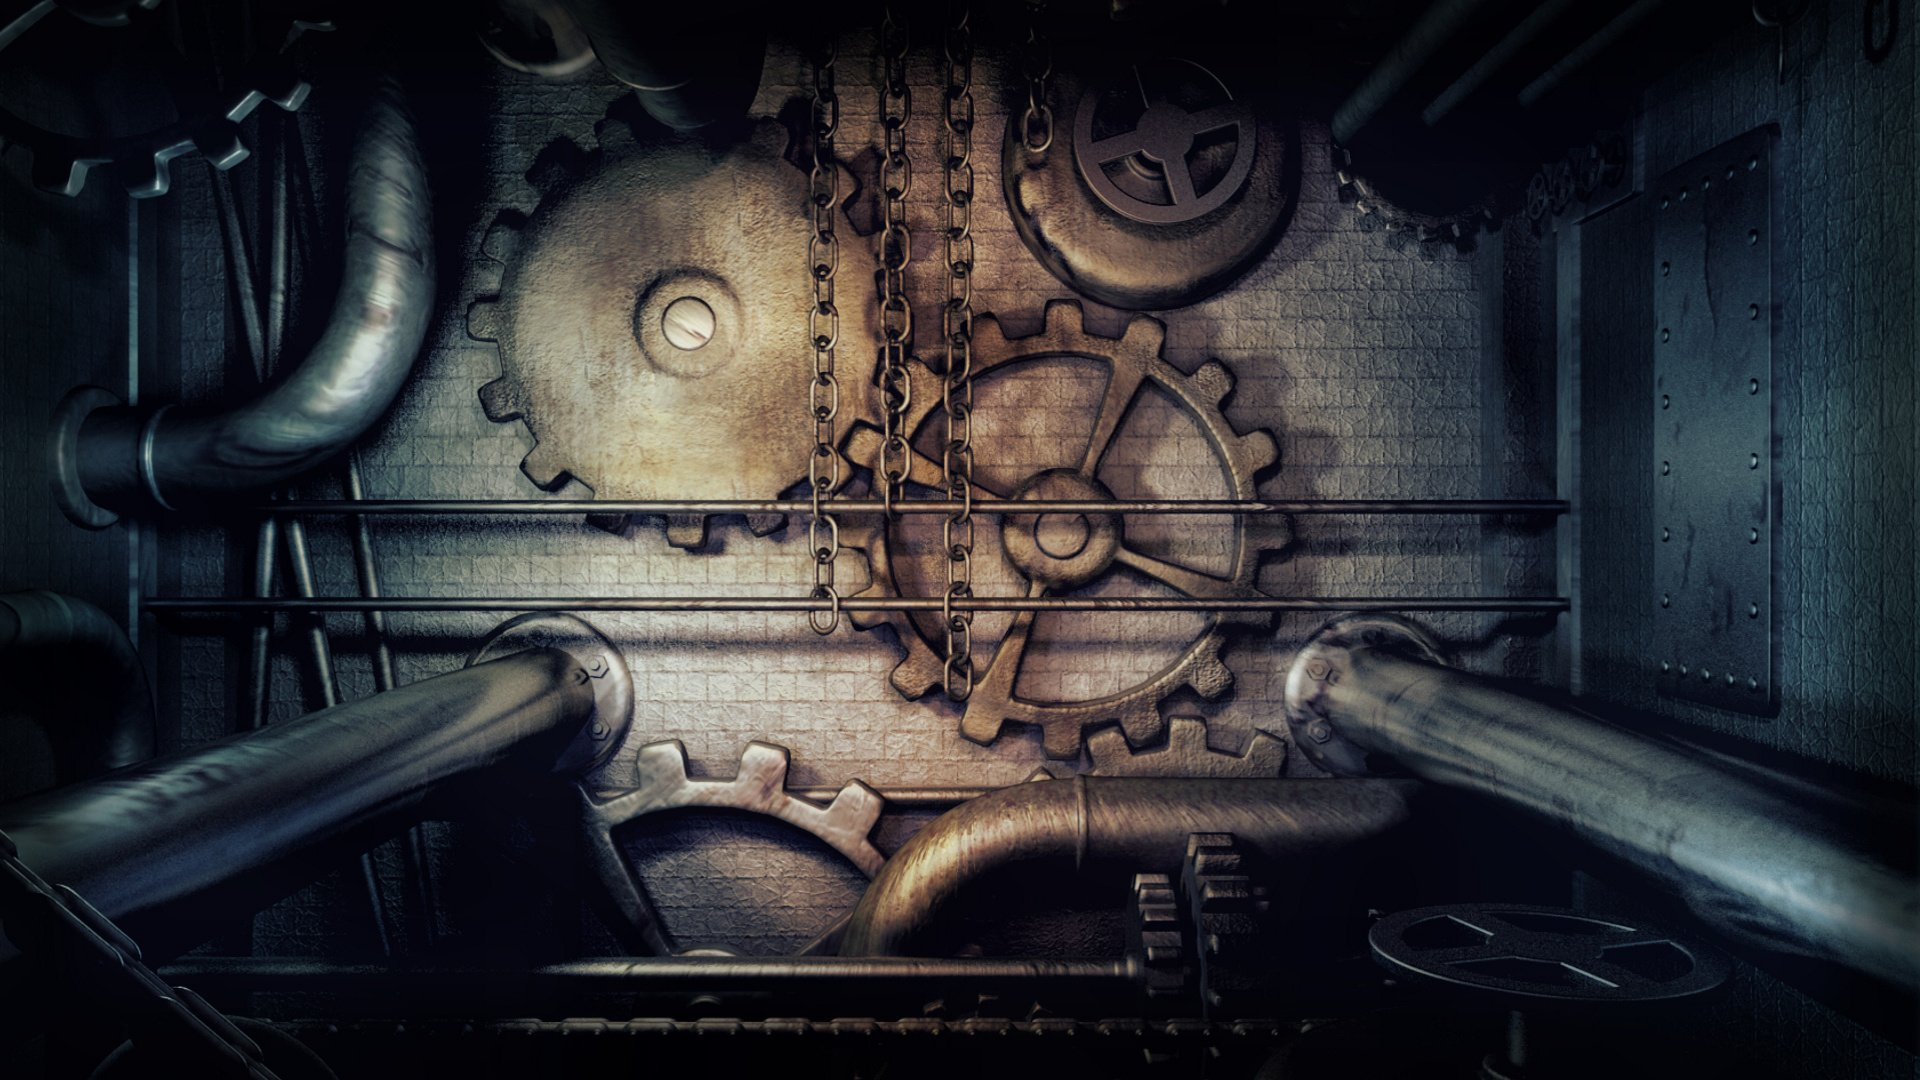 steampunk cogs abstract fantasy - photo #19